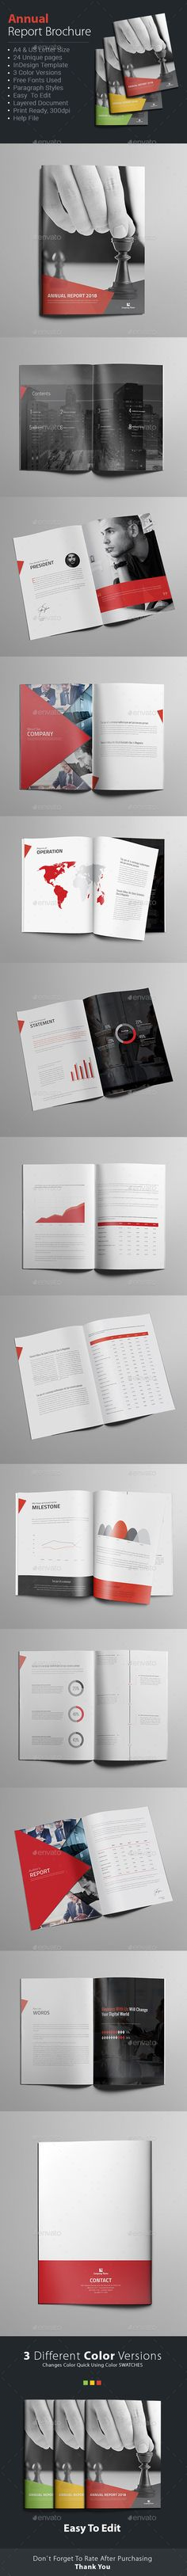 Annual Report - Informational Brochures Download http://graphicriver.net/item/annual-report/12743354?ref=themedevisers